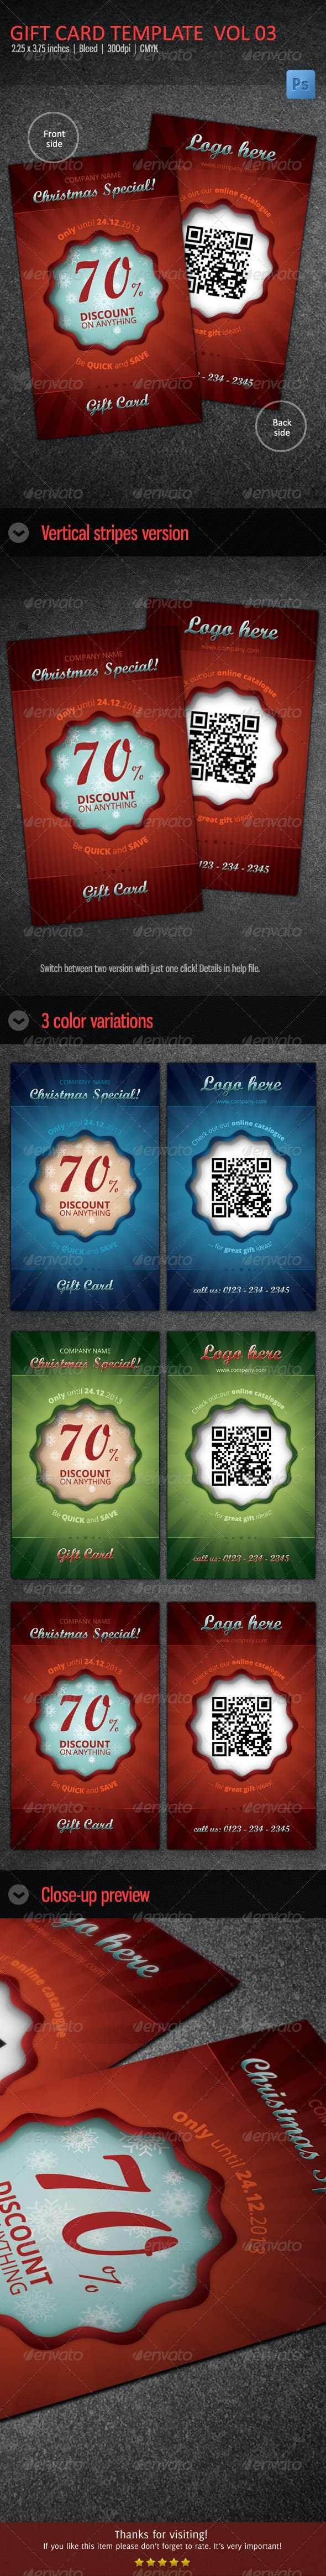 Christmas Gift Card / Voucher vol 03  - Cards & Invites Print Templates